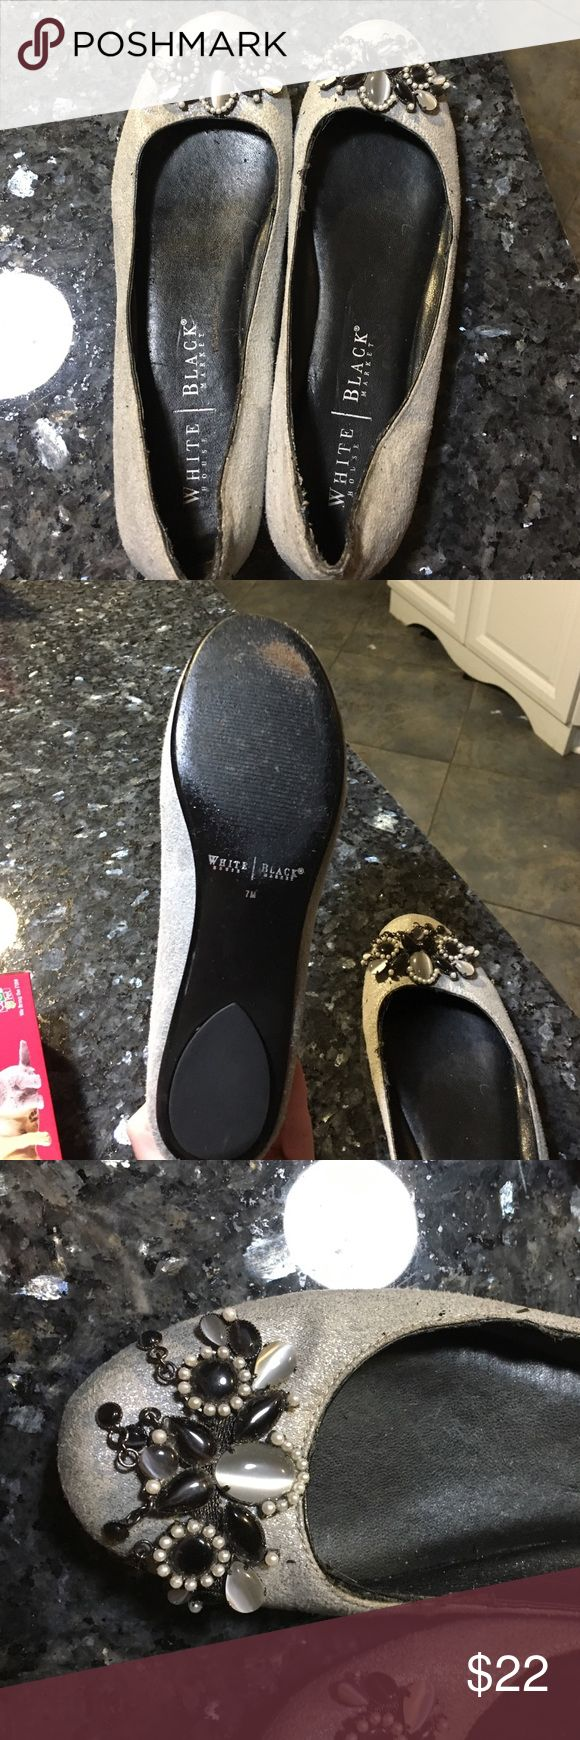 White House black market ballet flats White House black market silver ballet flats. Perfect to wear for the holidays. Jewels on top of each flat. Sign of wear only on inside of shoe. White House Black Market Shoes Flats & Loafers